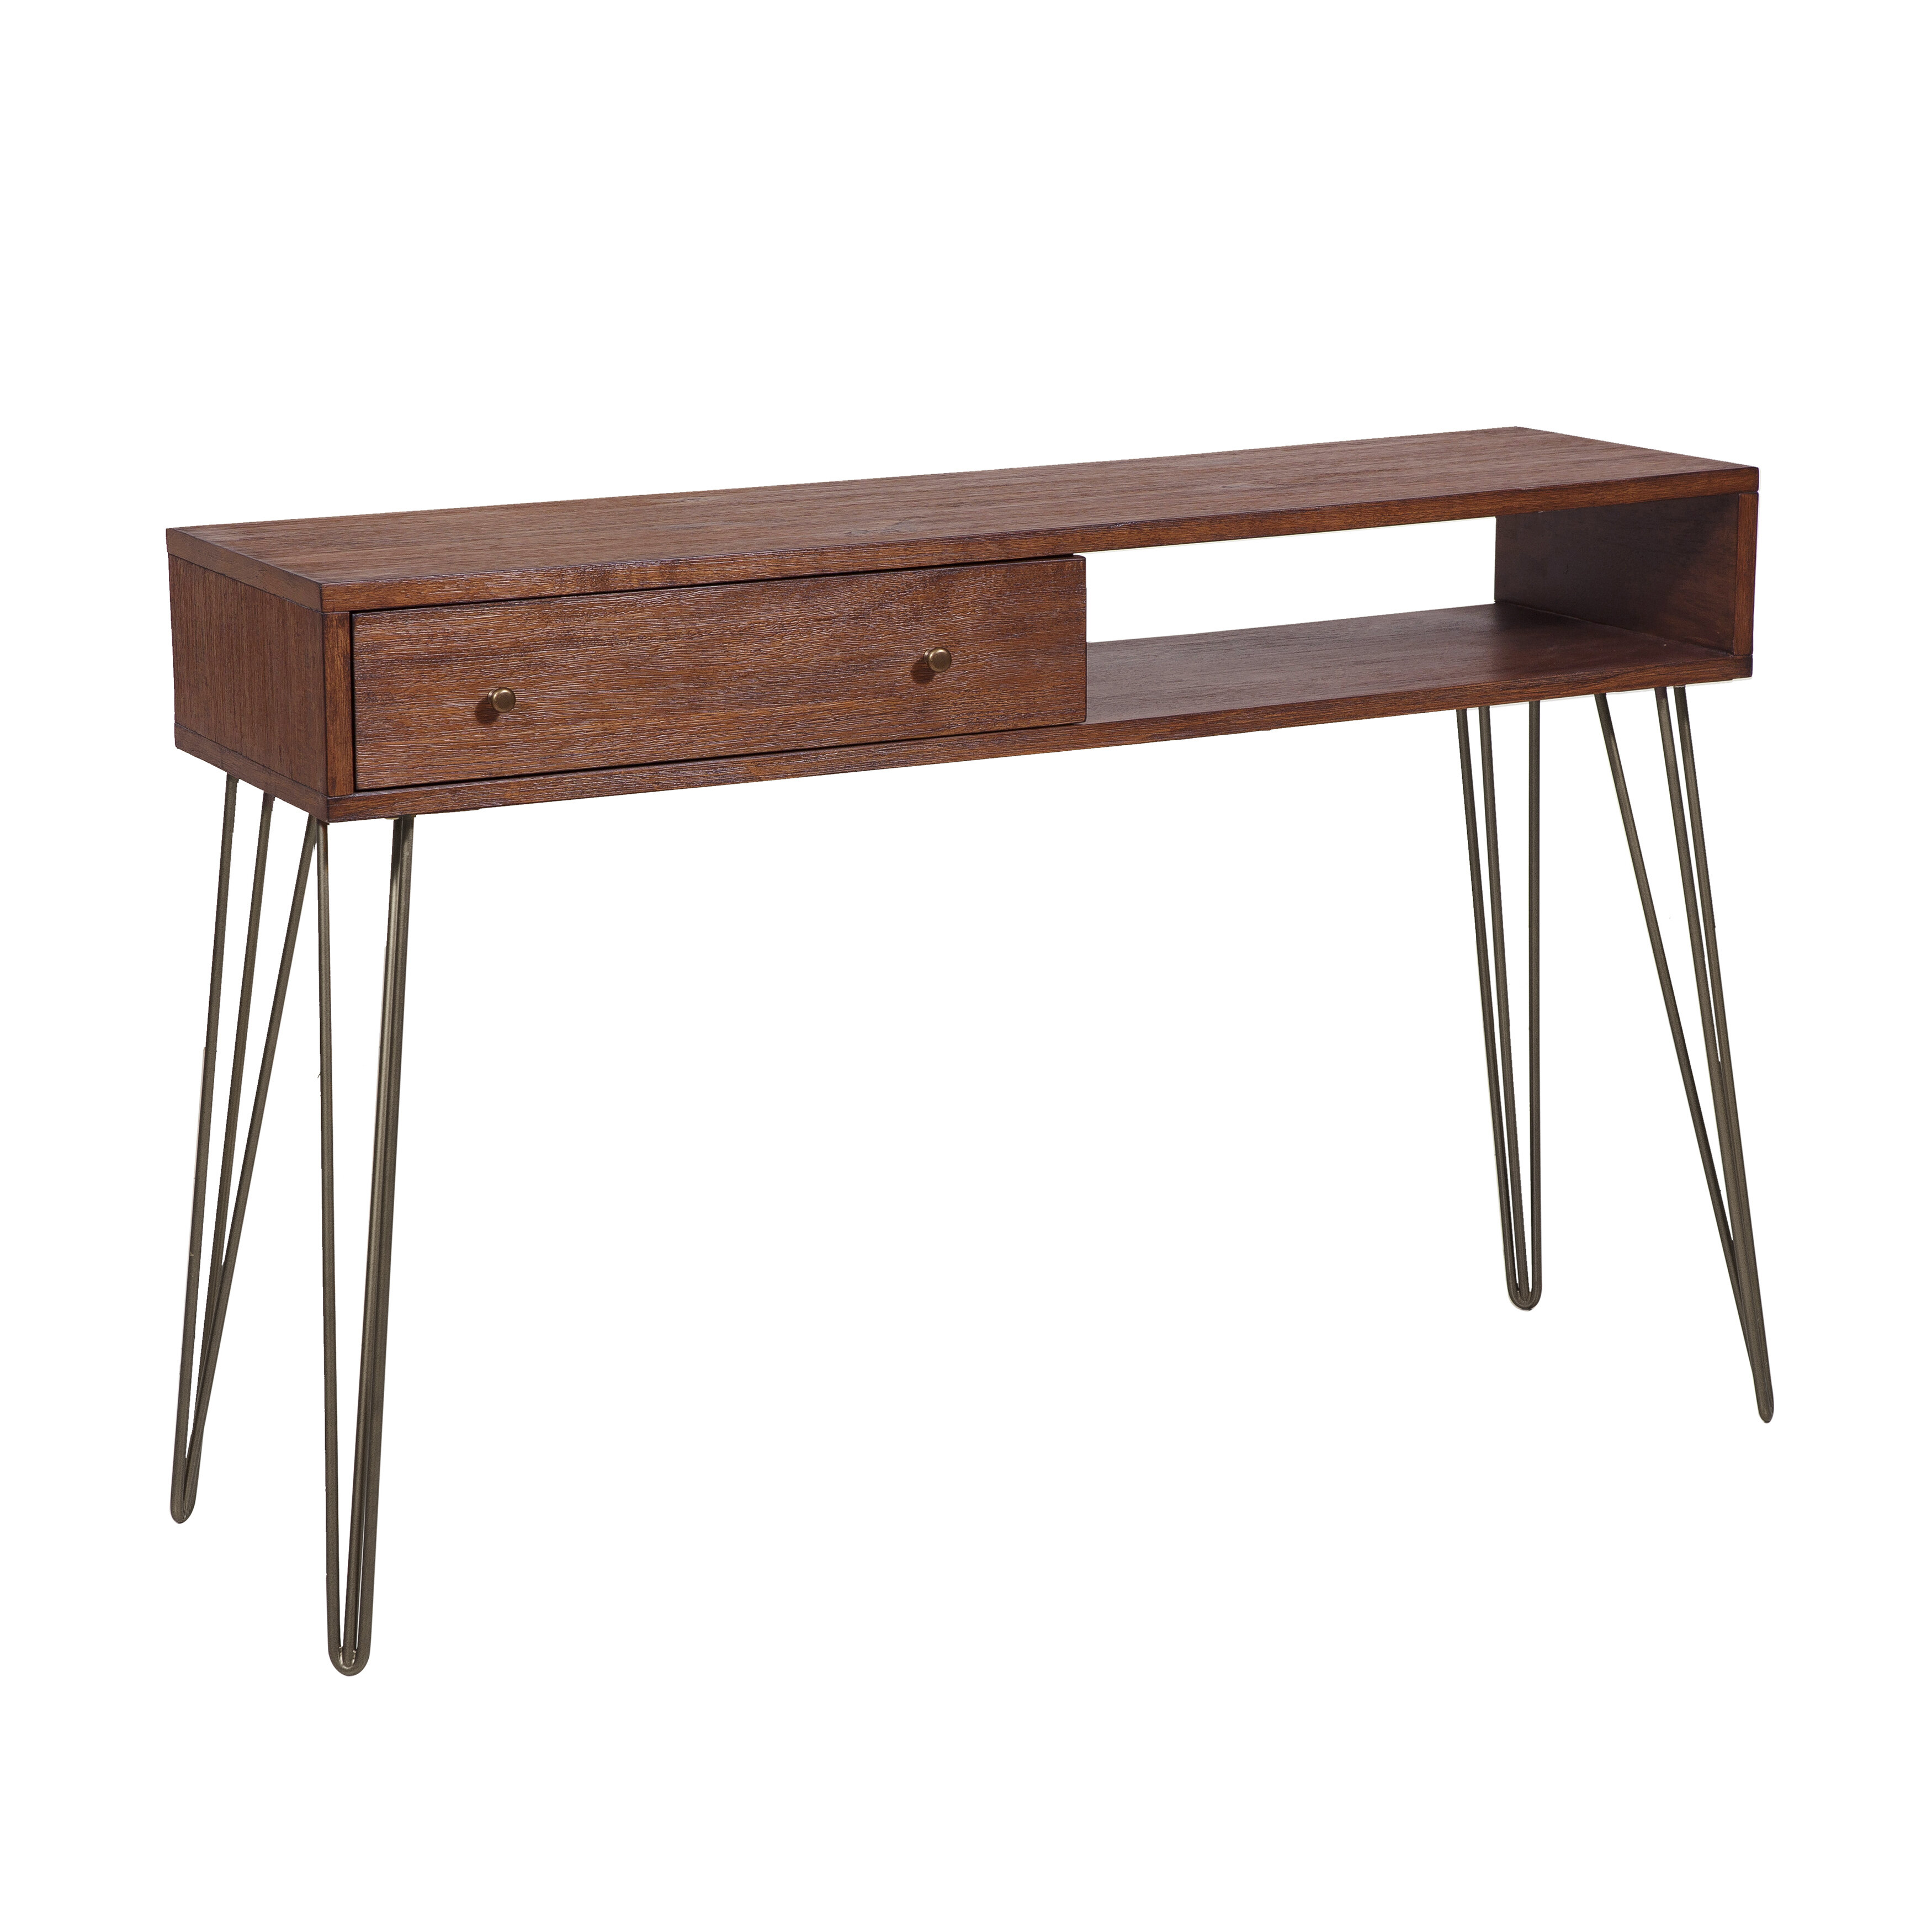 Picture of: Union Rustic Larock Mid Century 1 Drawer Storage Console Table Reviews Wayfair